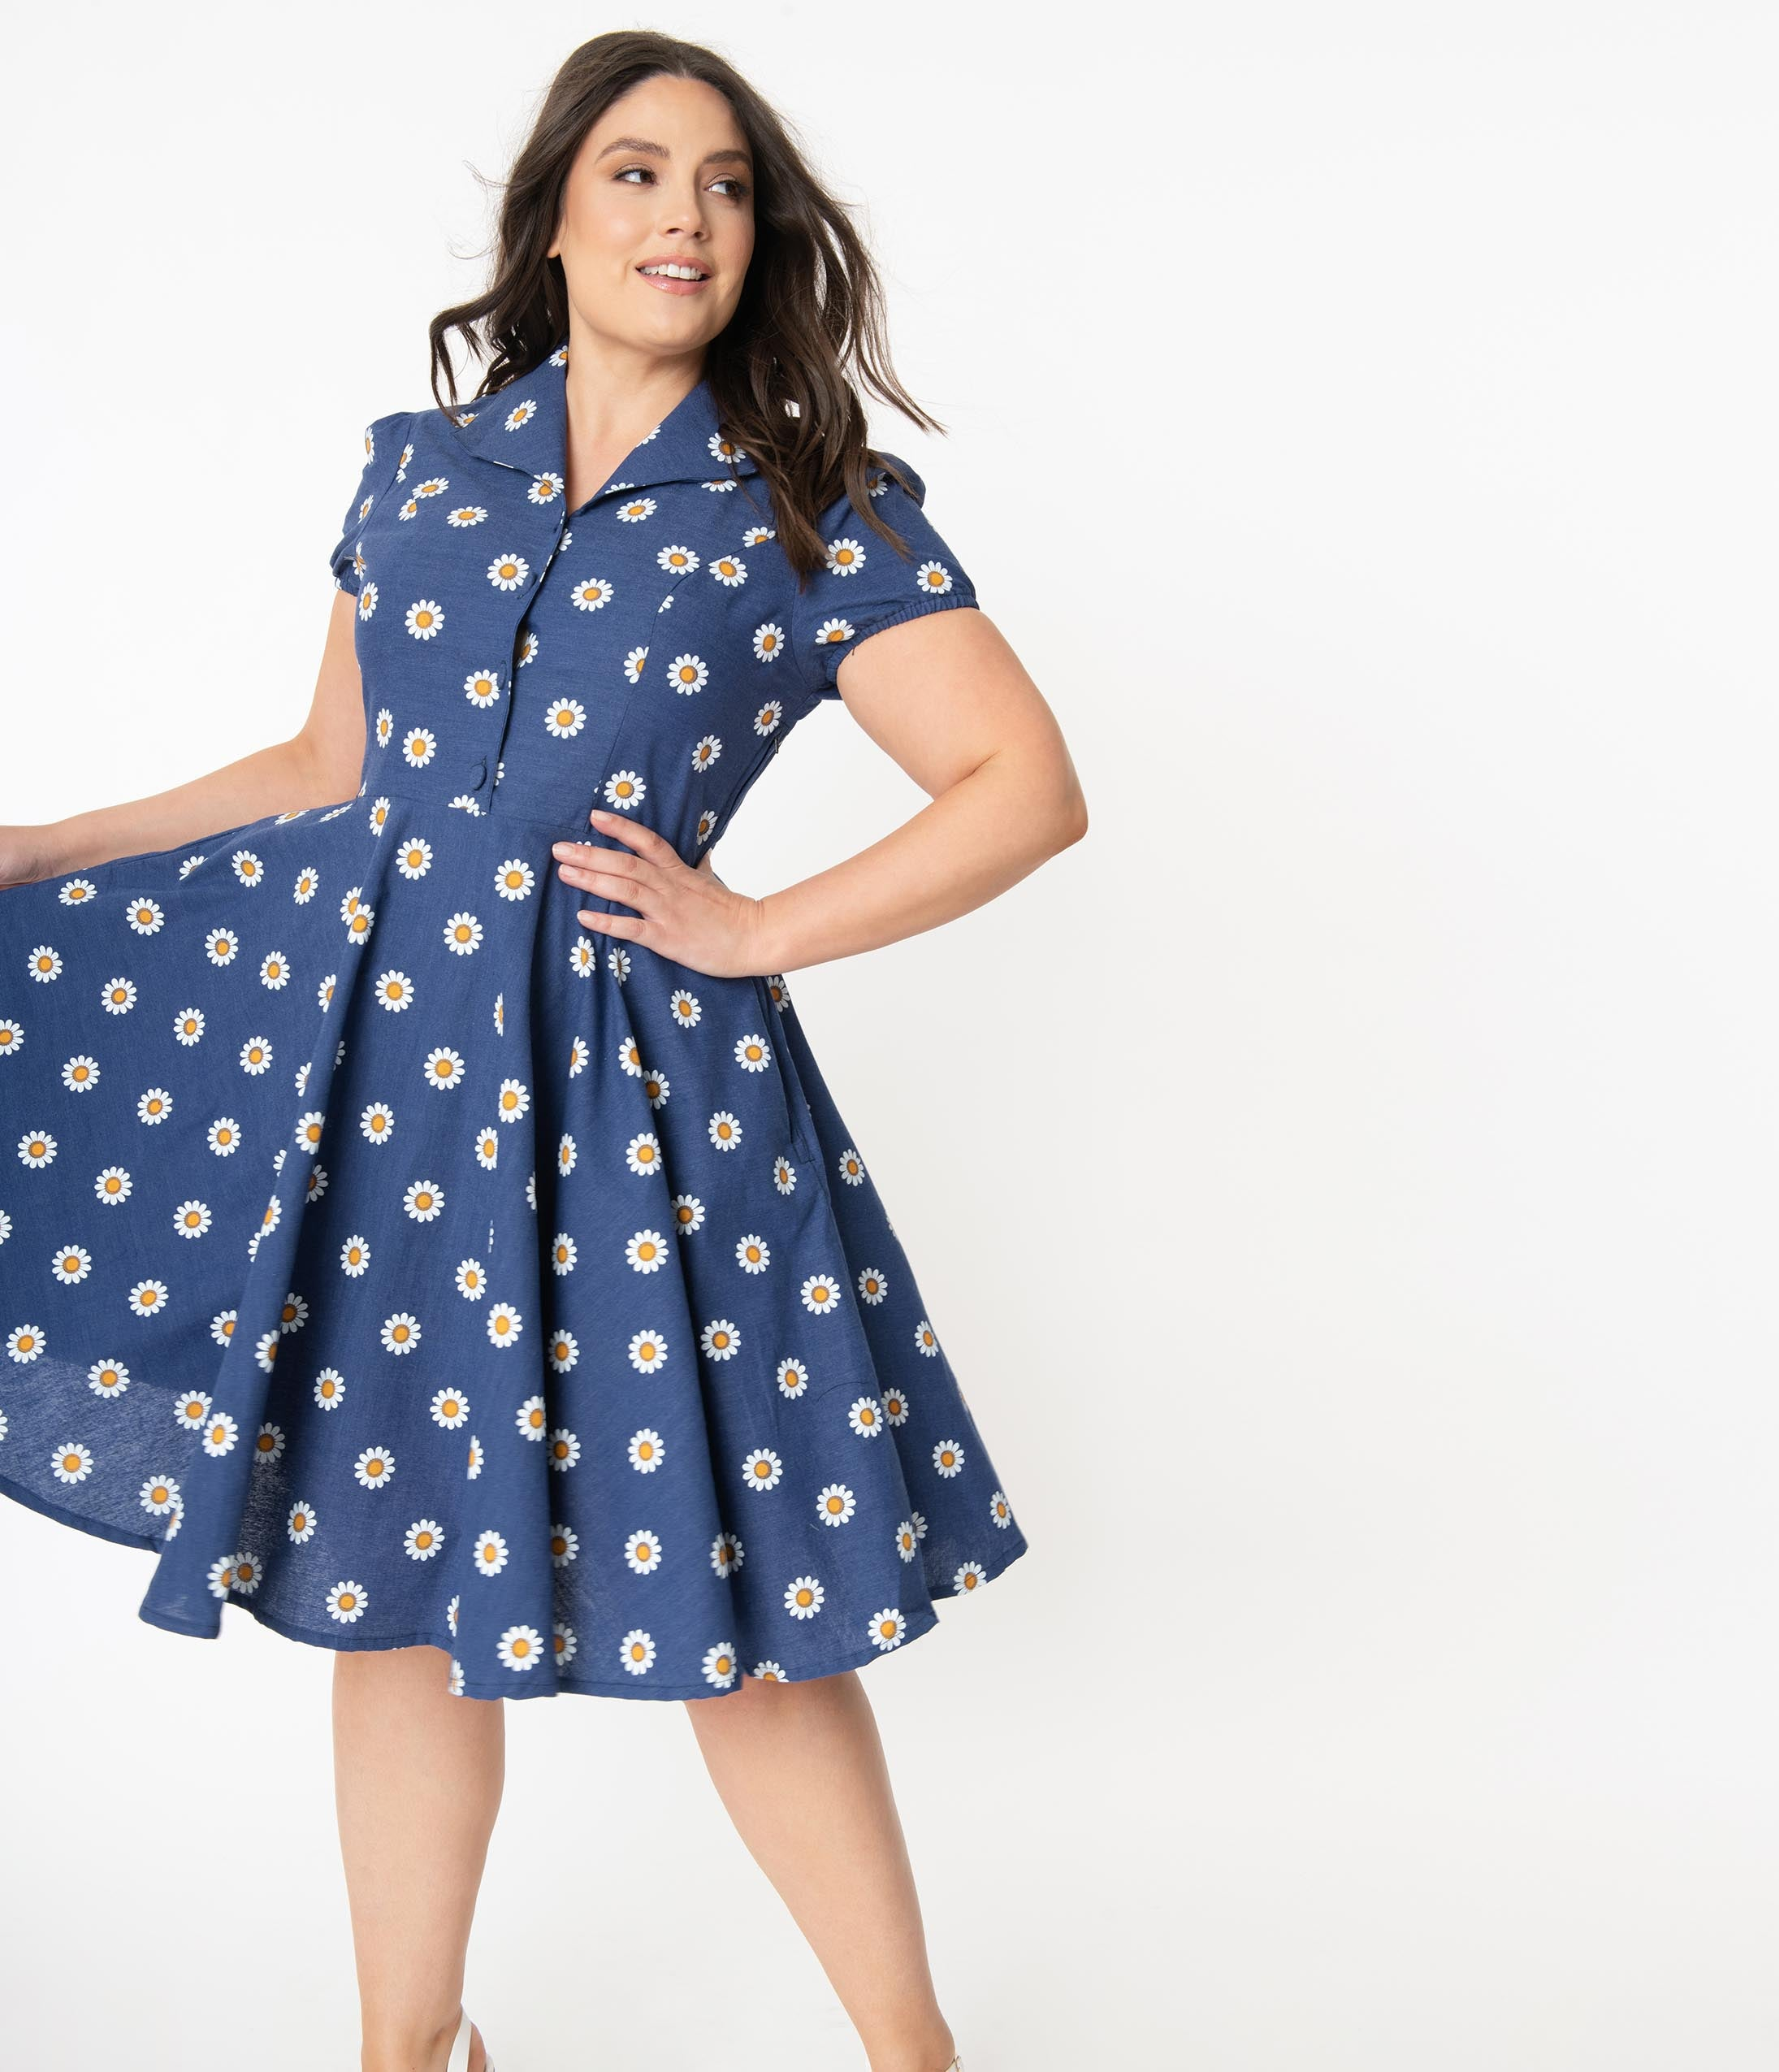 1950s Plus Size Dresses, Swing Dresses Plus Size 1950S Style Navy Blue Daisy Print Short Sleeve Mona Swing Dress $88.00 AT vintagedancer.com